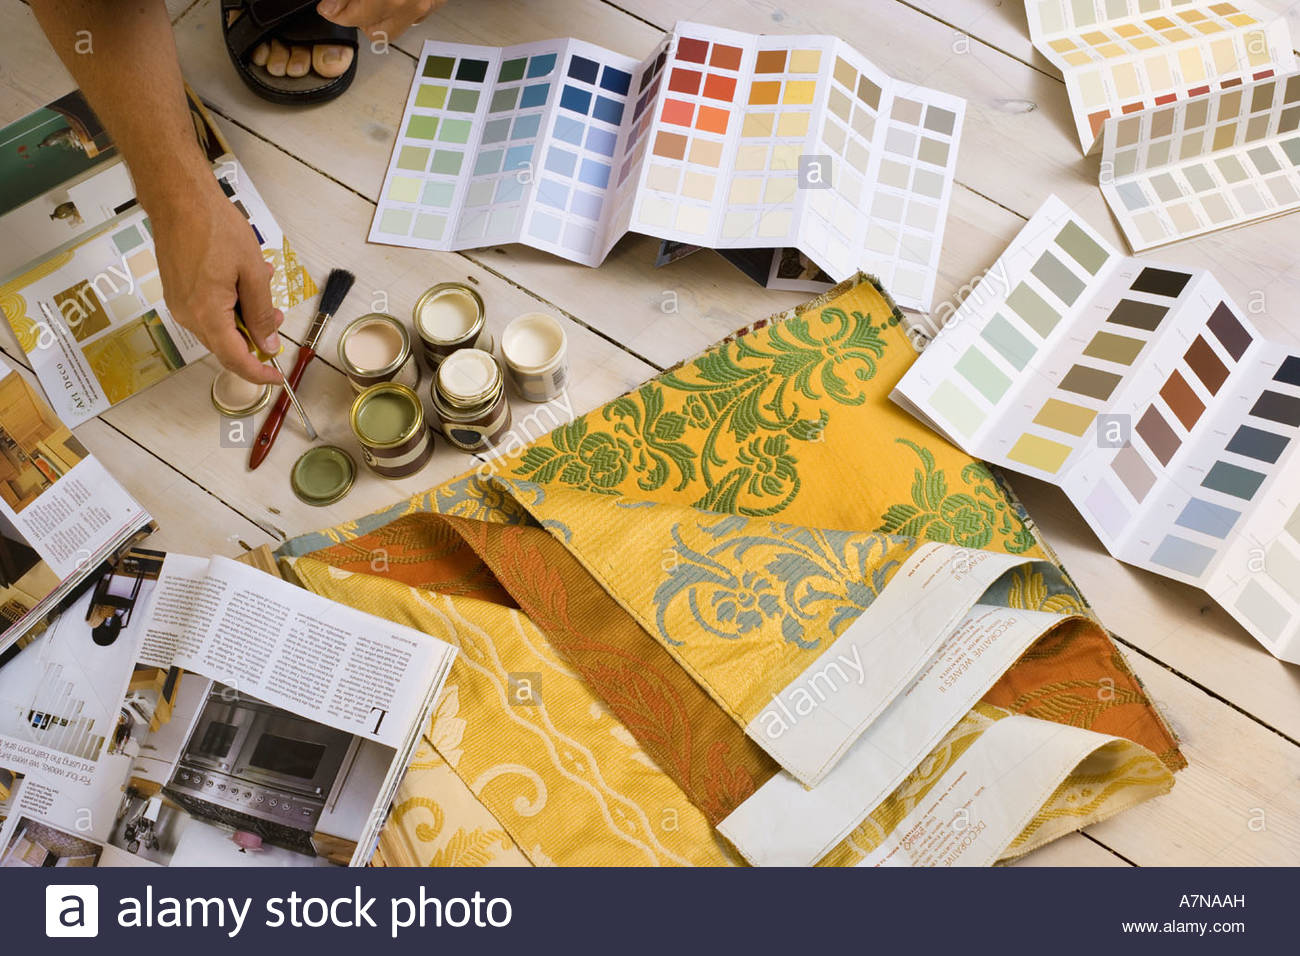 tins of paint stockfotos tins of paint bilder alamy. Black Bedroom Furniture Sets. Home Design Ideas